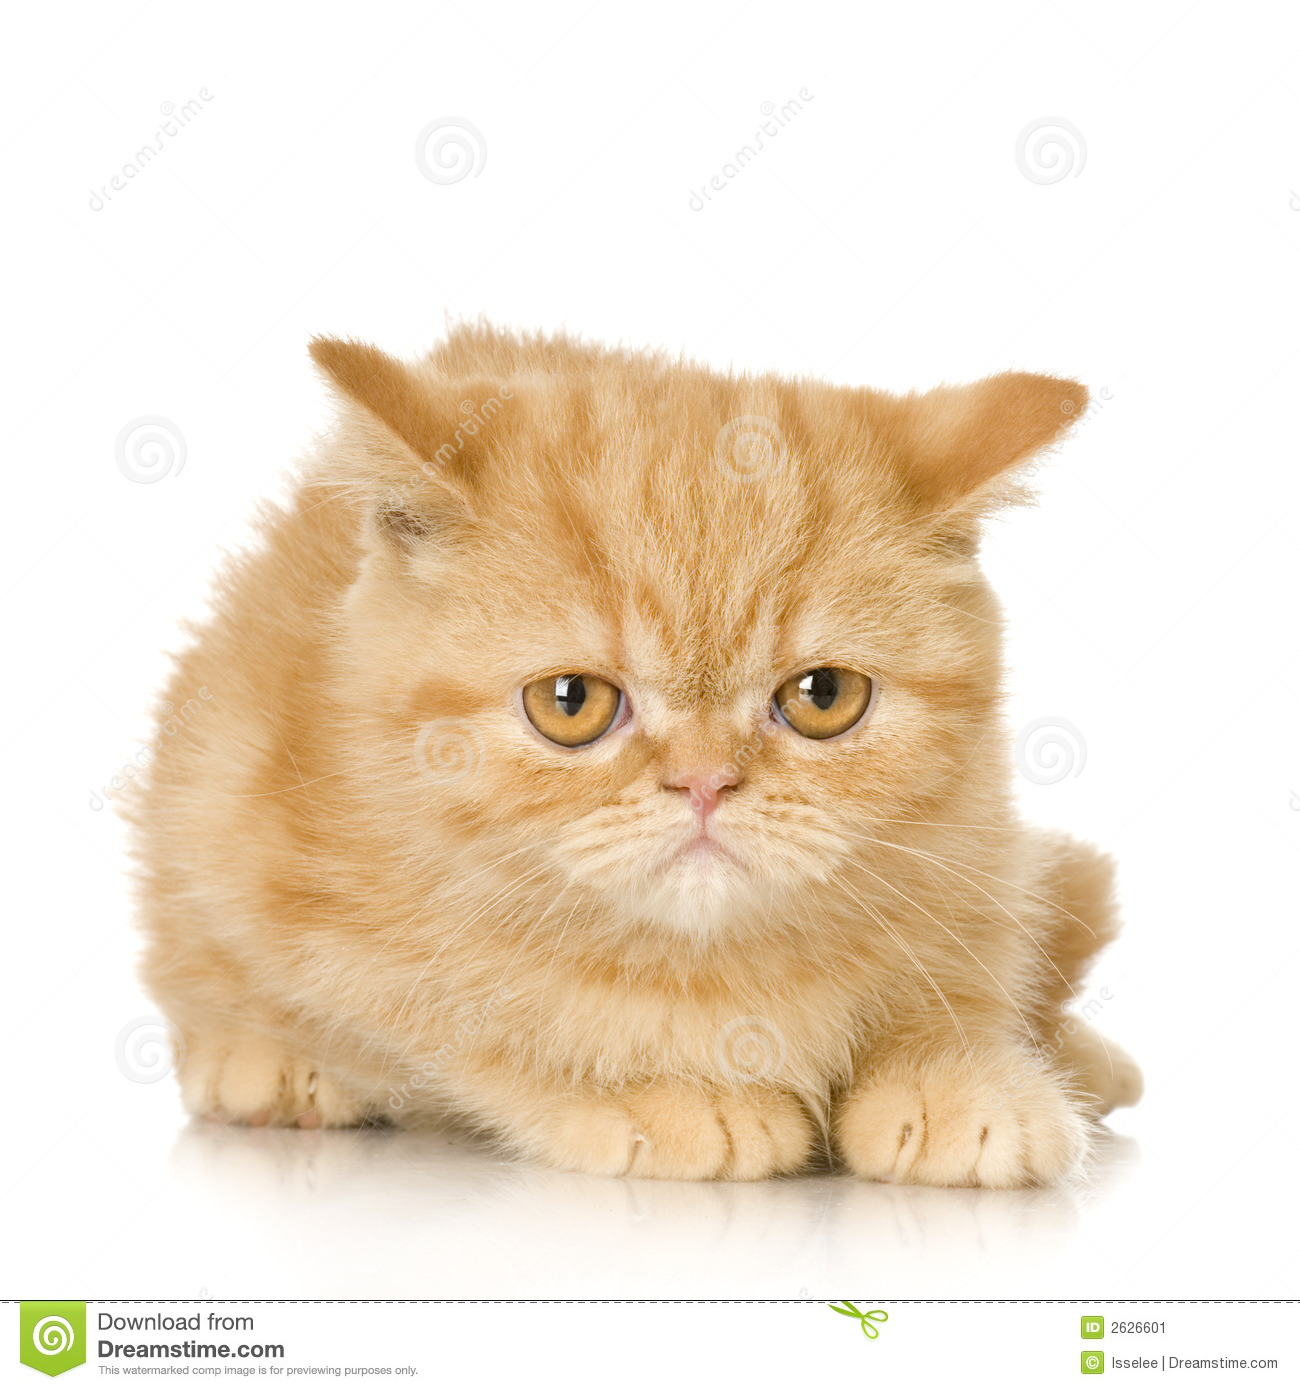 Ginger persian Cat kitten in front of a white background.